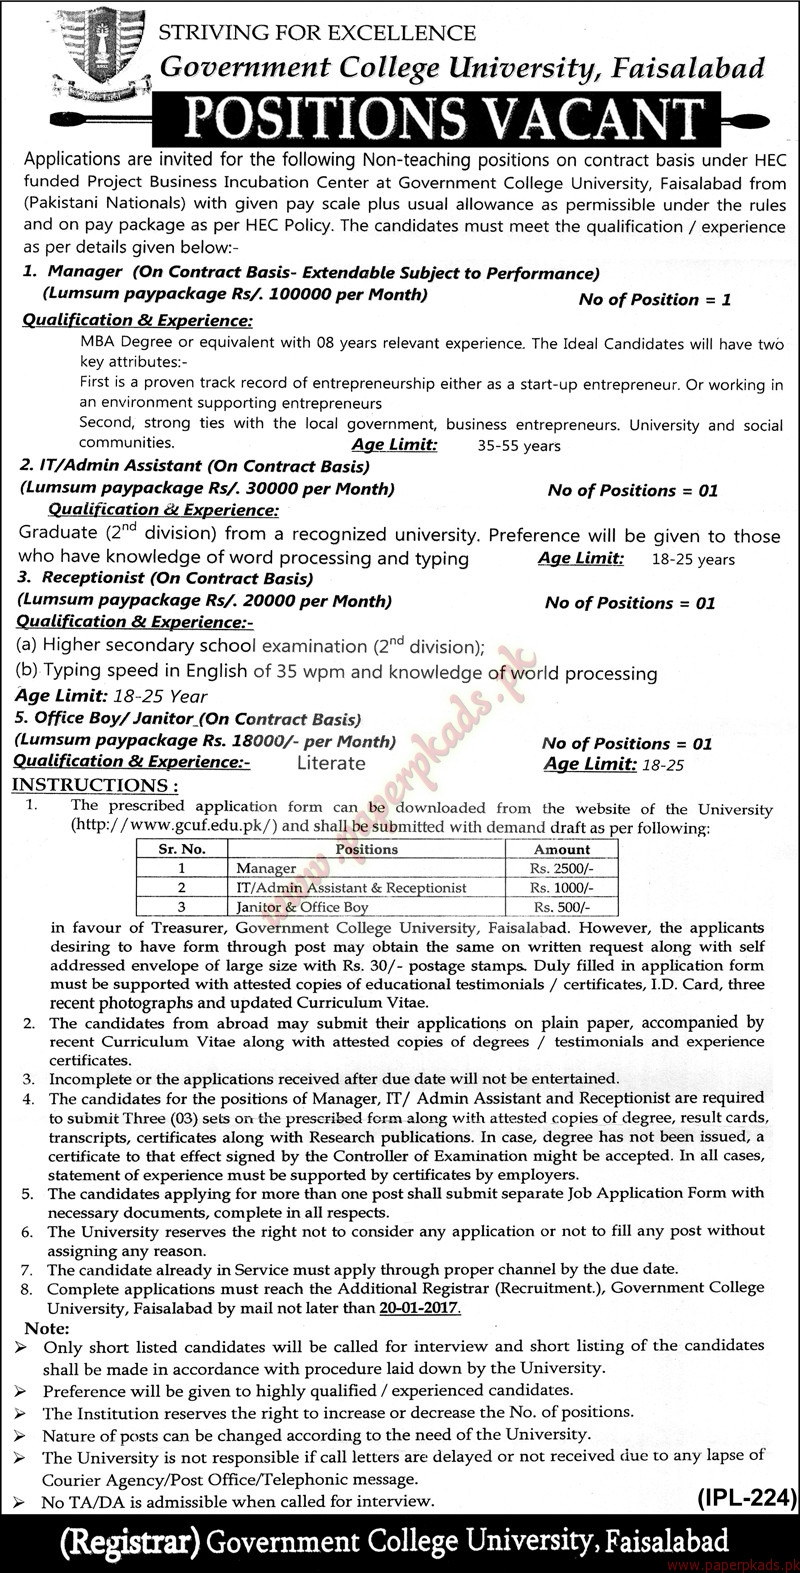 Government College University Faisalabad Jobs